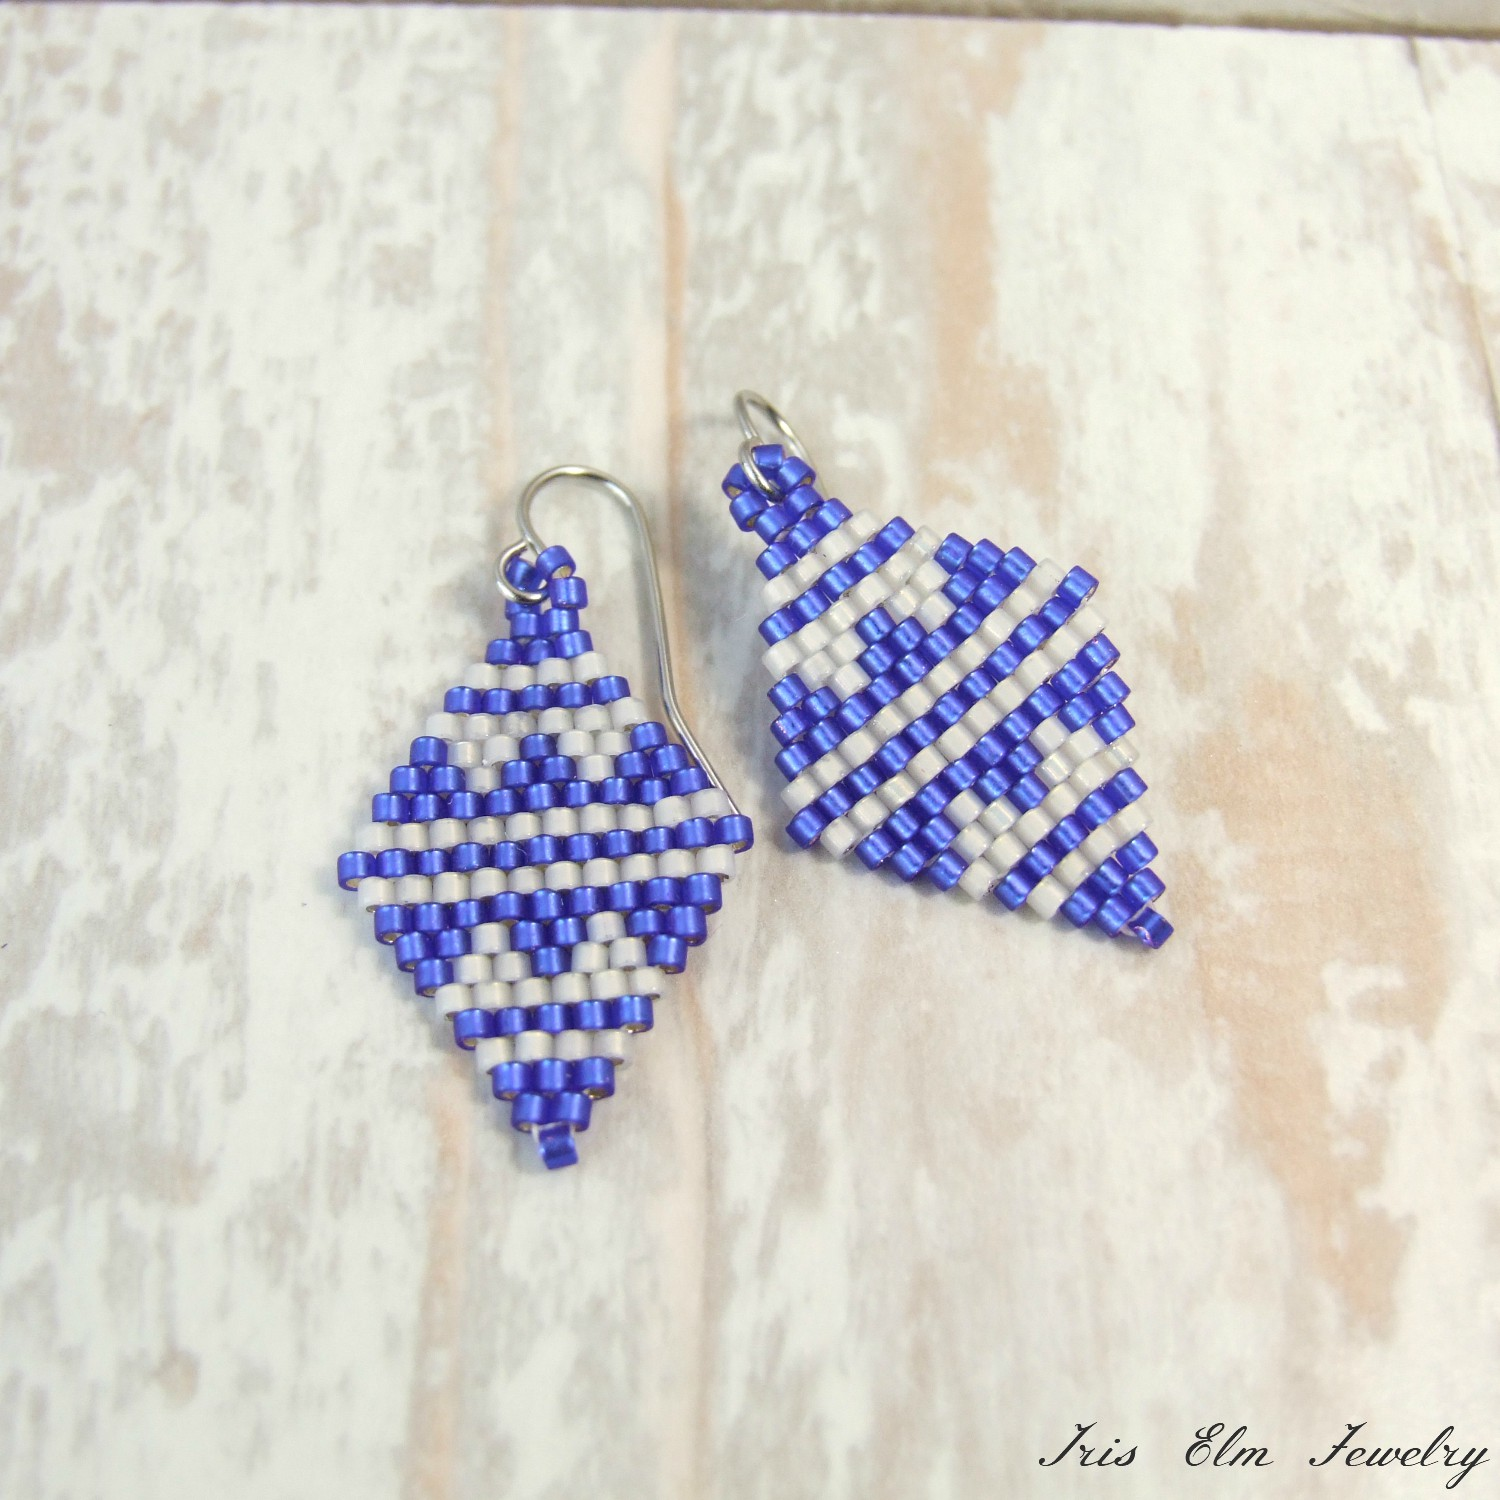 Blue & White Small Diamond Shaped Glass Bead Earrings